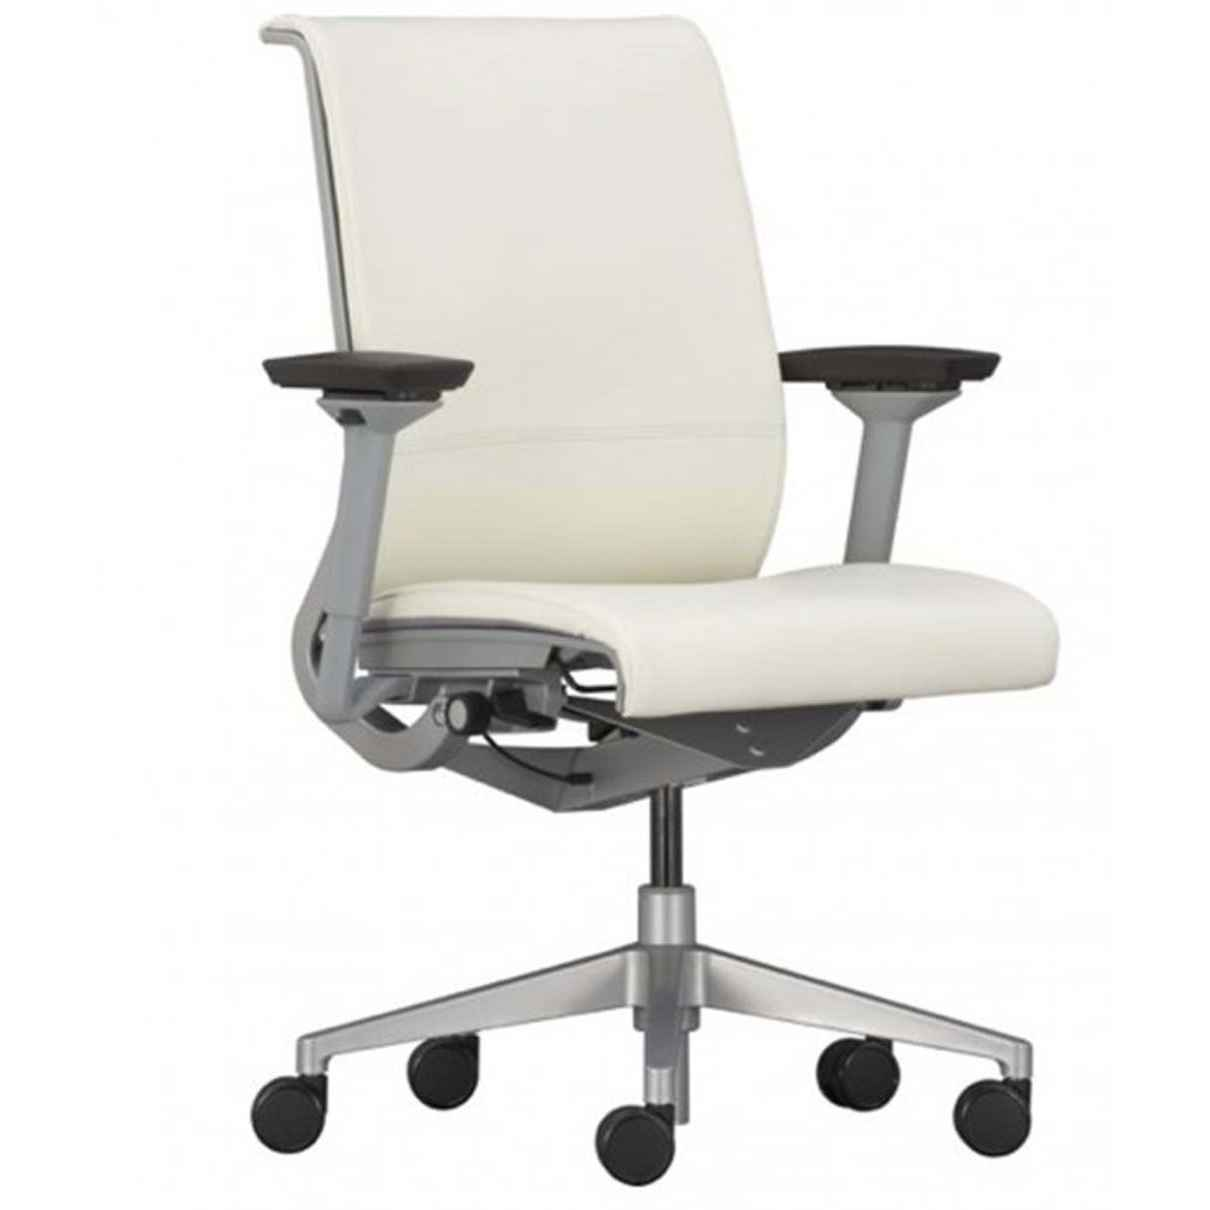 Soft white leather desk chair